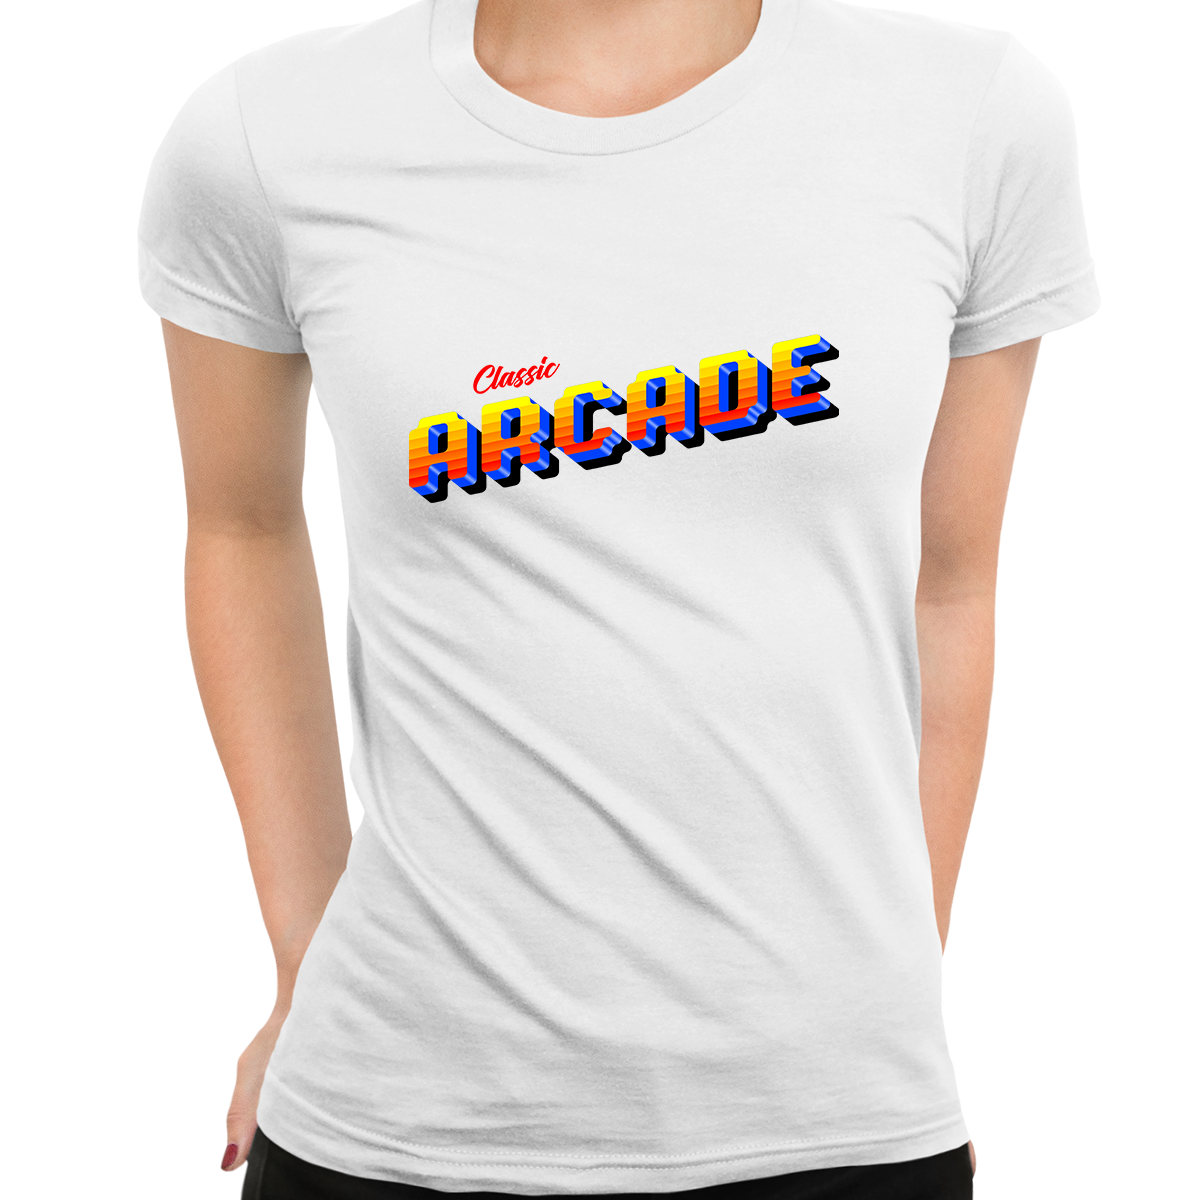 Classic Arcade Vintage Sign Retro 80's Style Crew Neck White t shirt